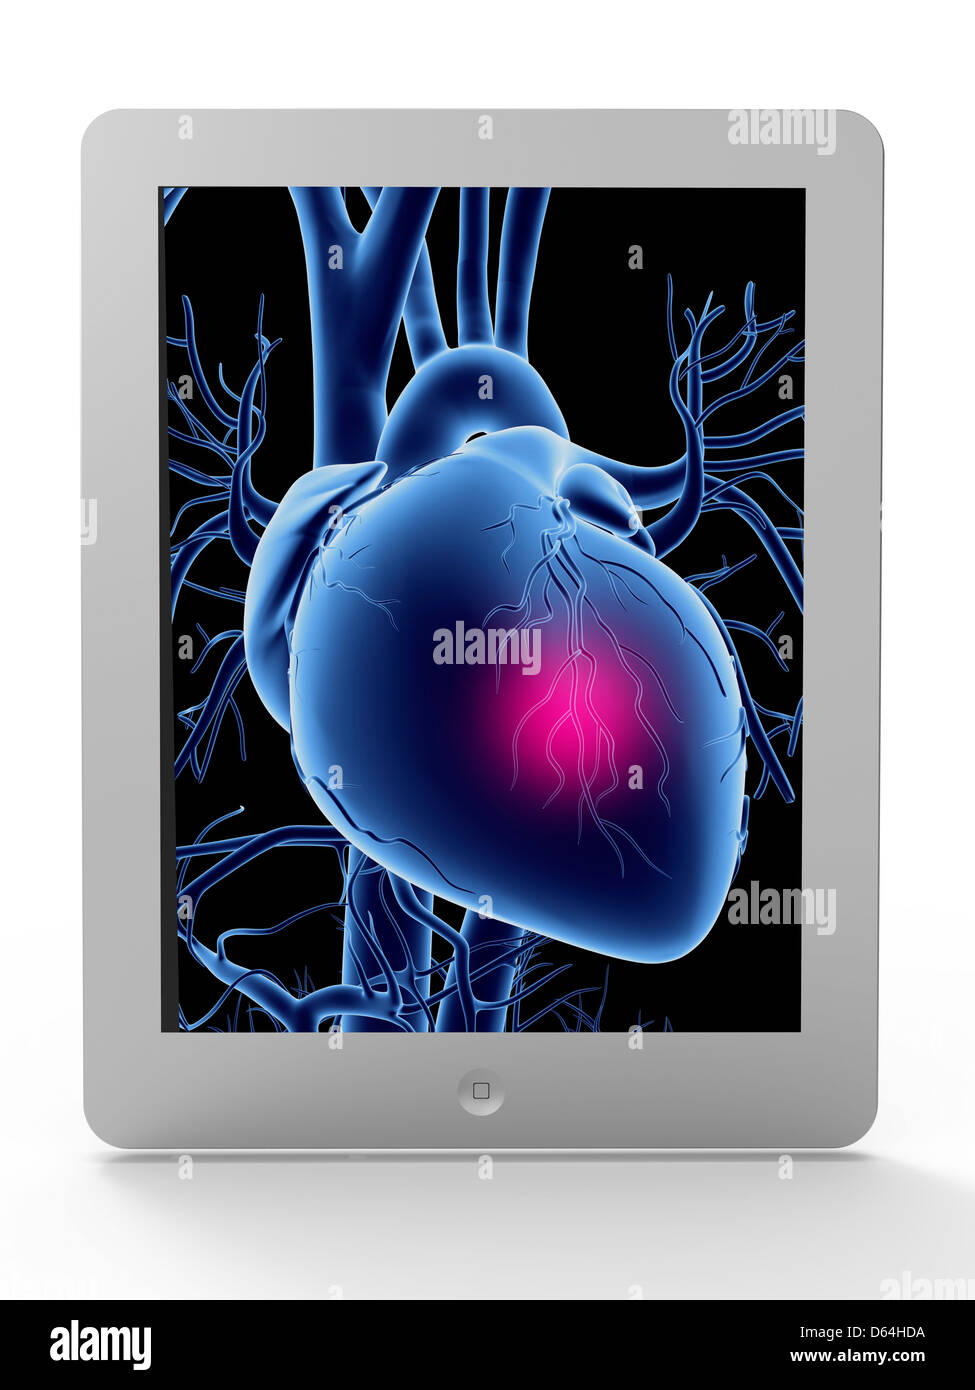 Tablet computer, crise cardiaque artwork Photo Stock